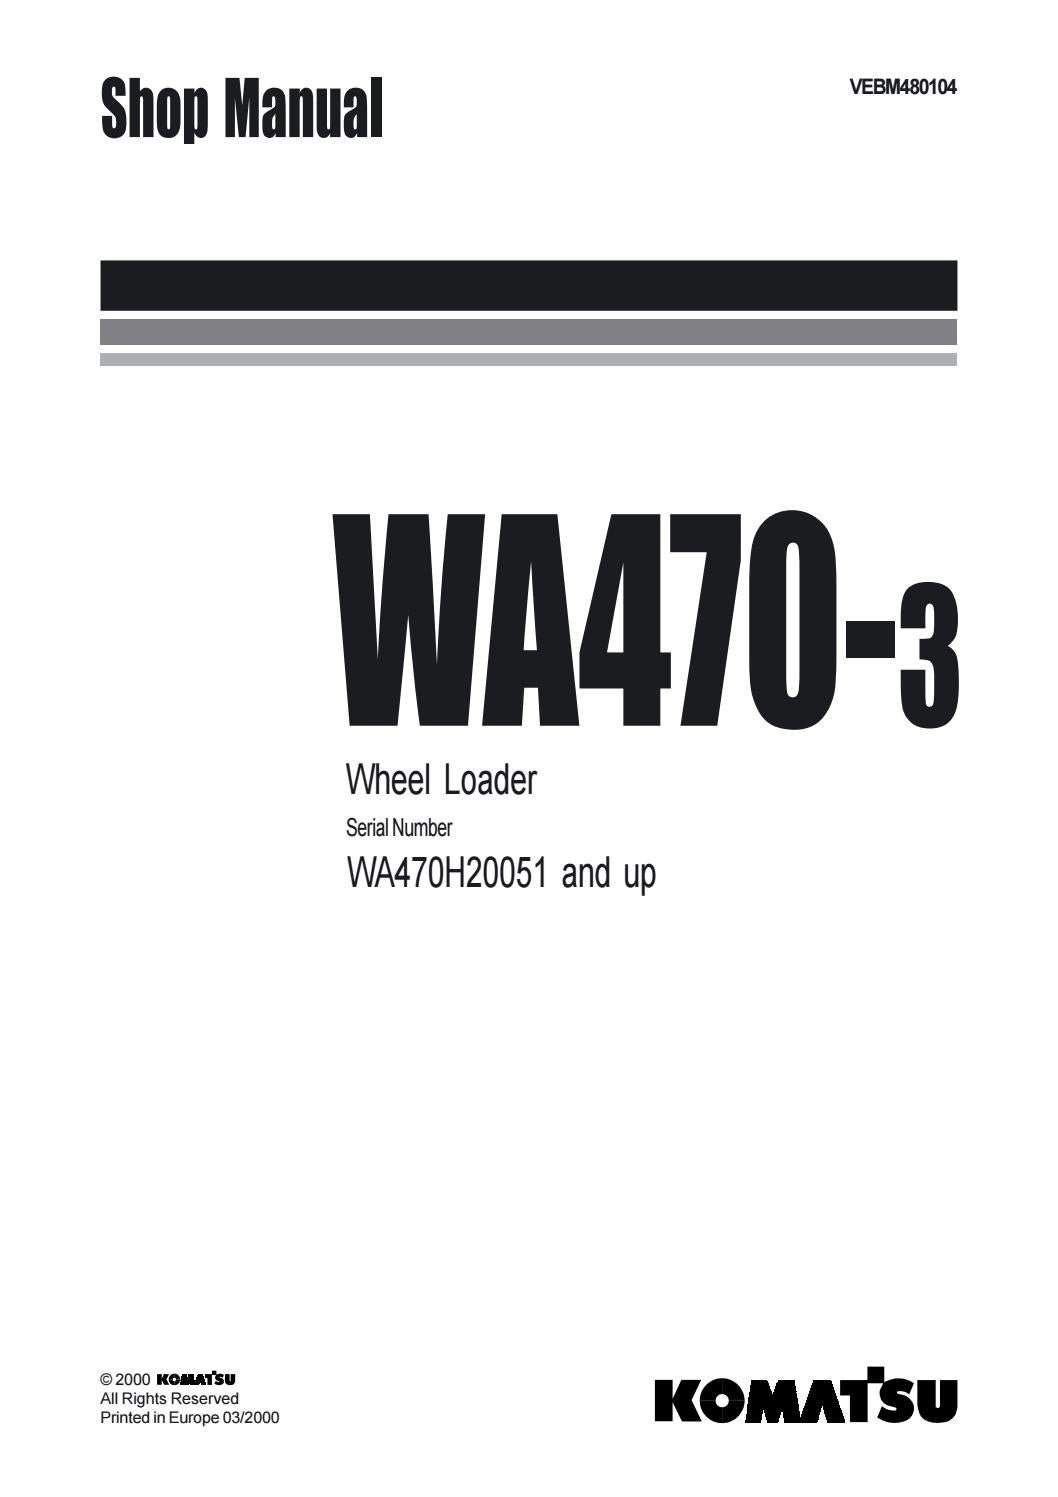 Komatsu WA470-3 Wheel Loader Service Repair Manual SN